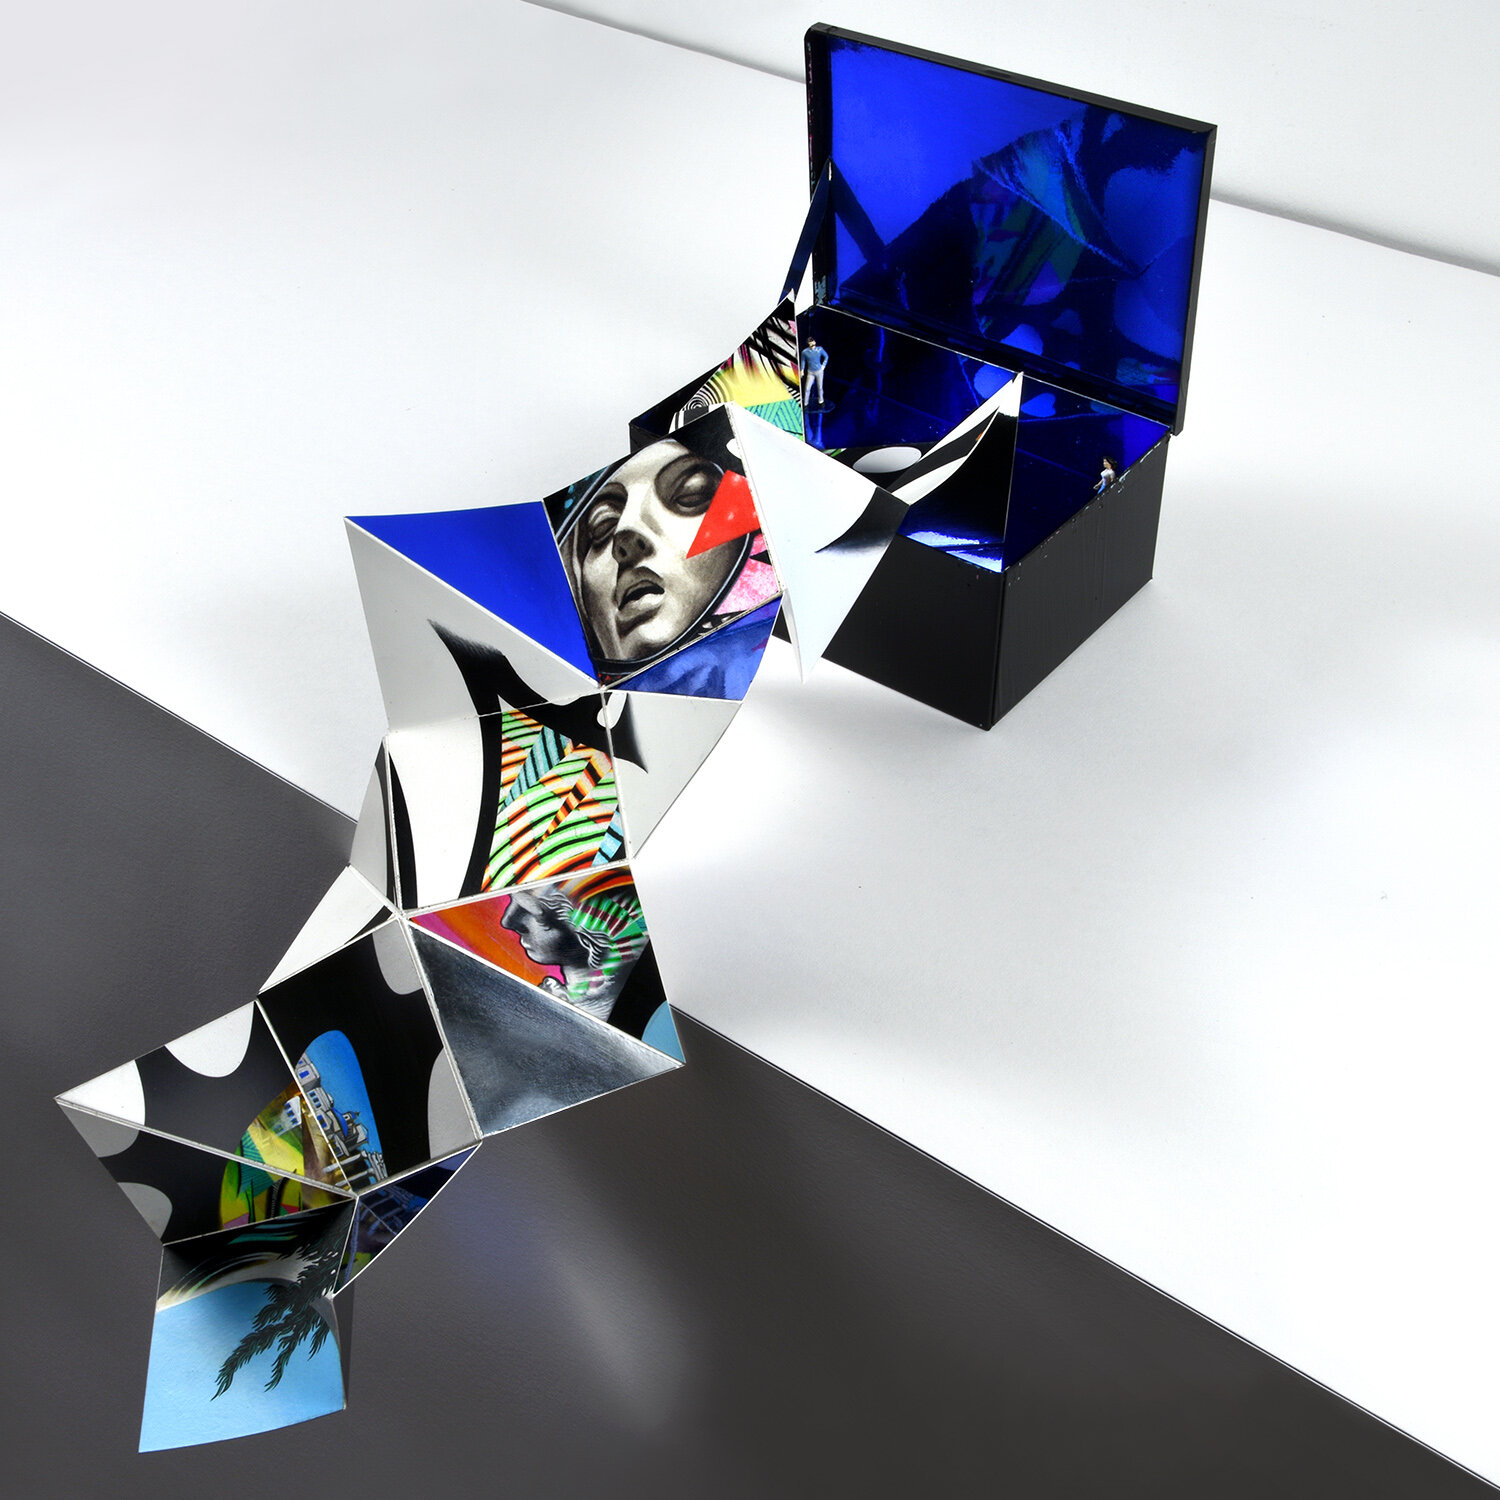 Pandora's Box   Origami Sculpture for Mykonos Biennale 2019. Gouache, acrylic, mirrored mylar, & paper on yupo w/ painted figurines in mirrored box. Approximately 26 in x 8 in x 6 in (66.04 cm x 20.32 cm x 15.24 cm). 2019. Exhibited as part of Antidote Treasure Hunt on Delos Island.